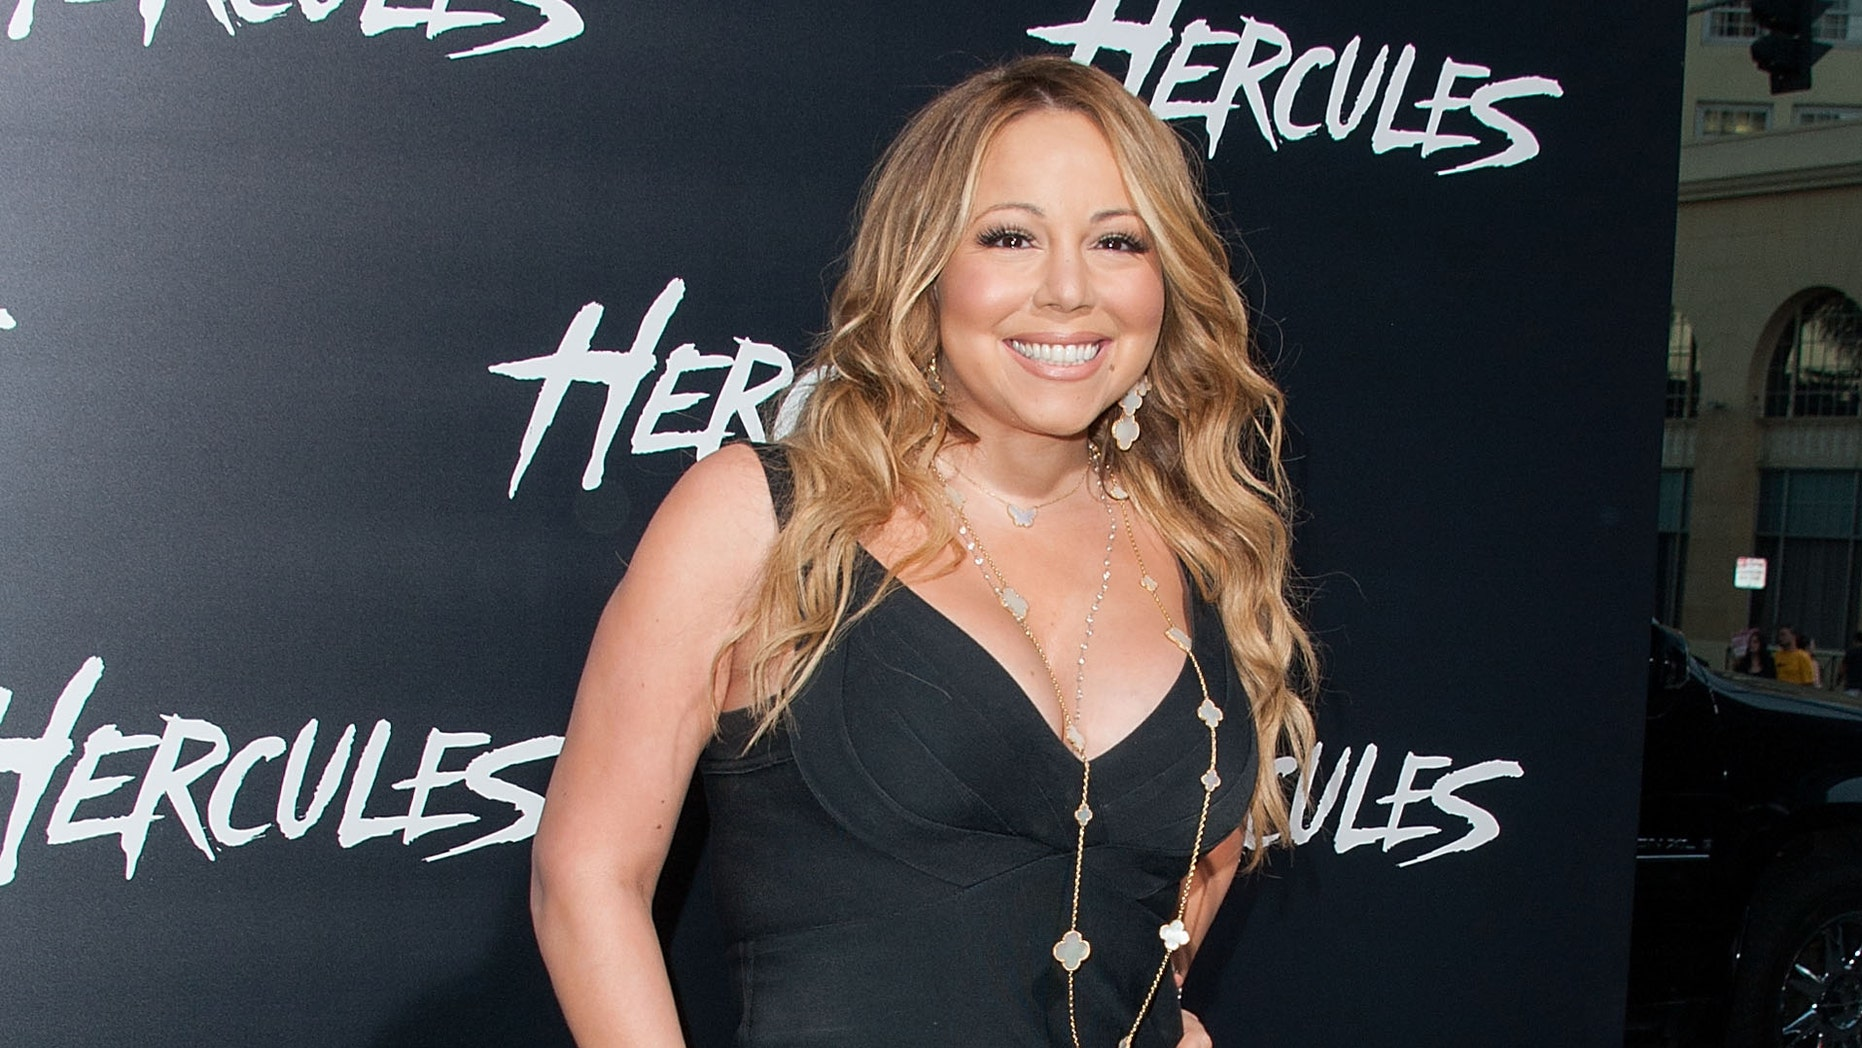 """Mariah Carey arrives at the premiere of """"Hercules"""" on July 23, 2014 in Hollywood, California."""